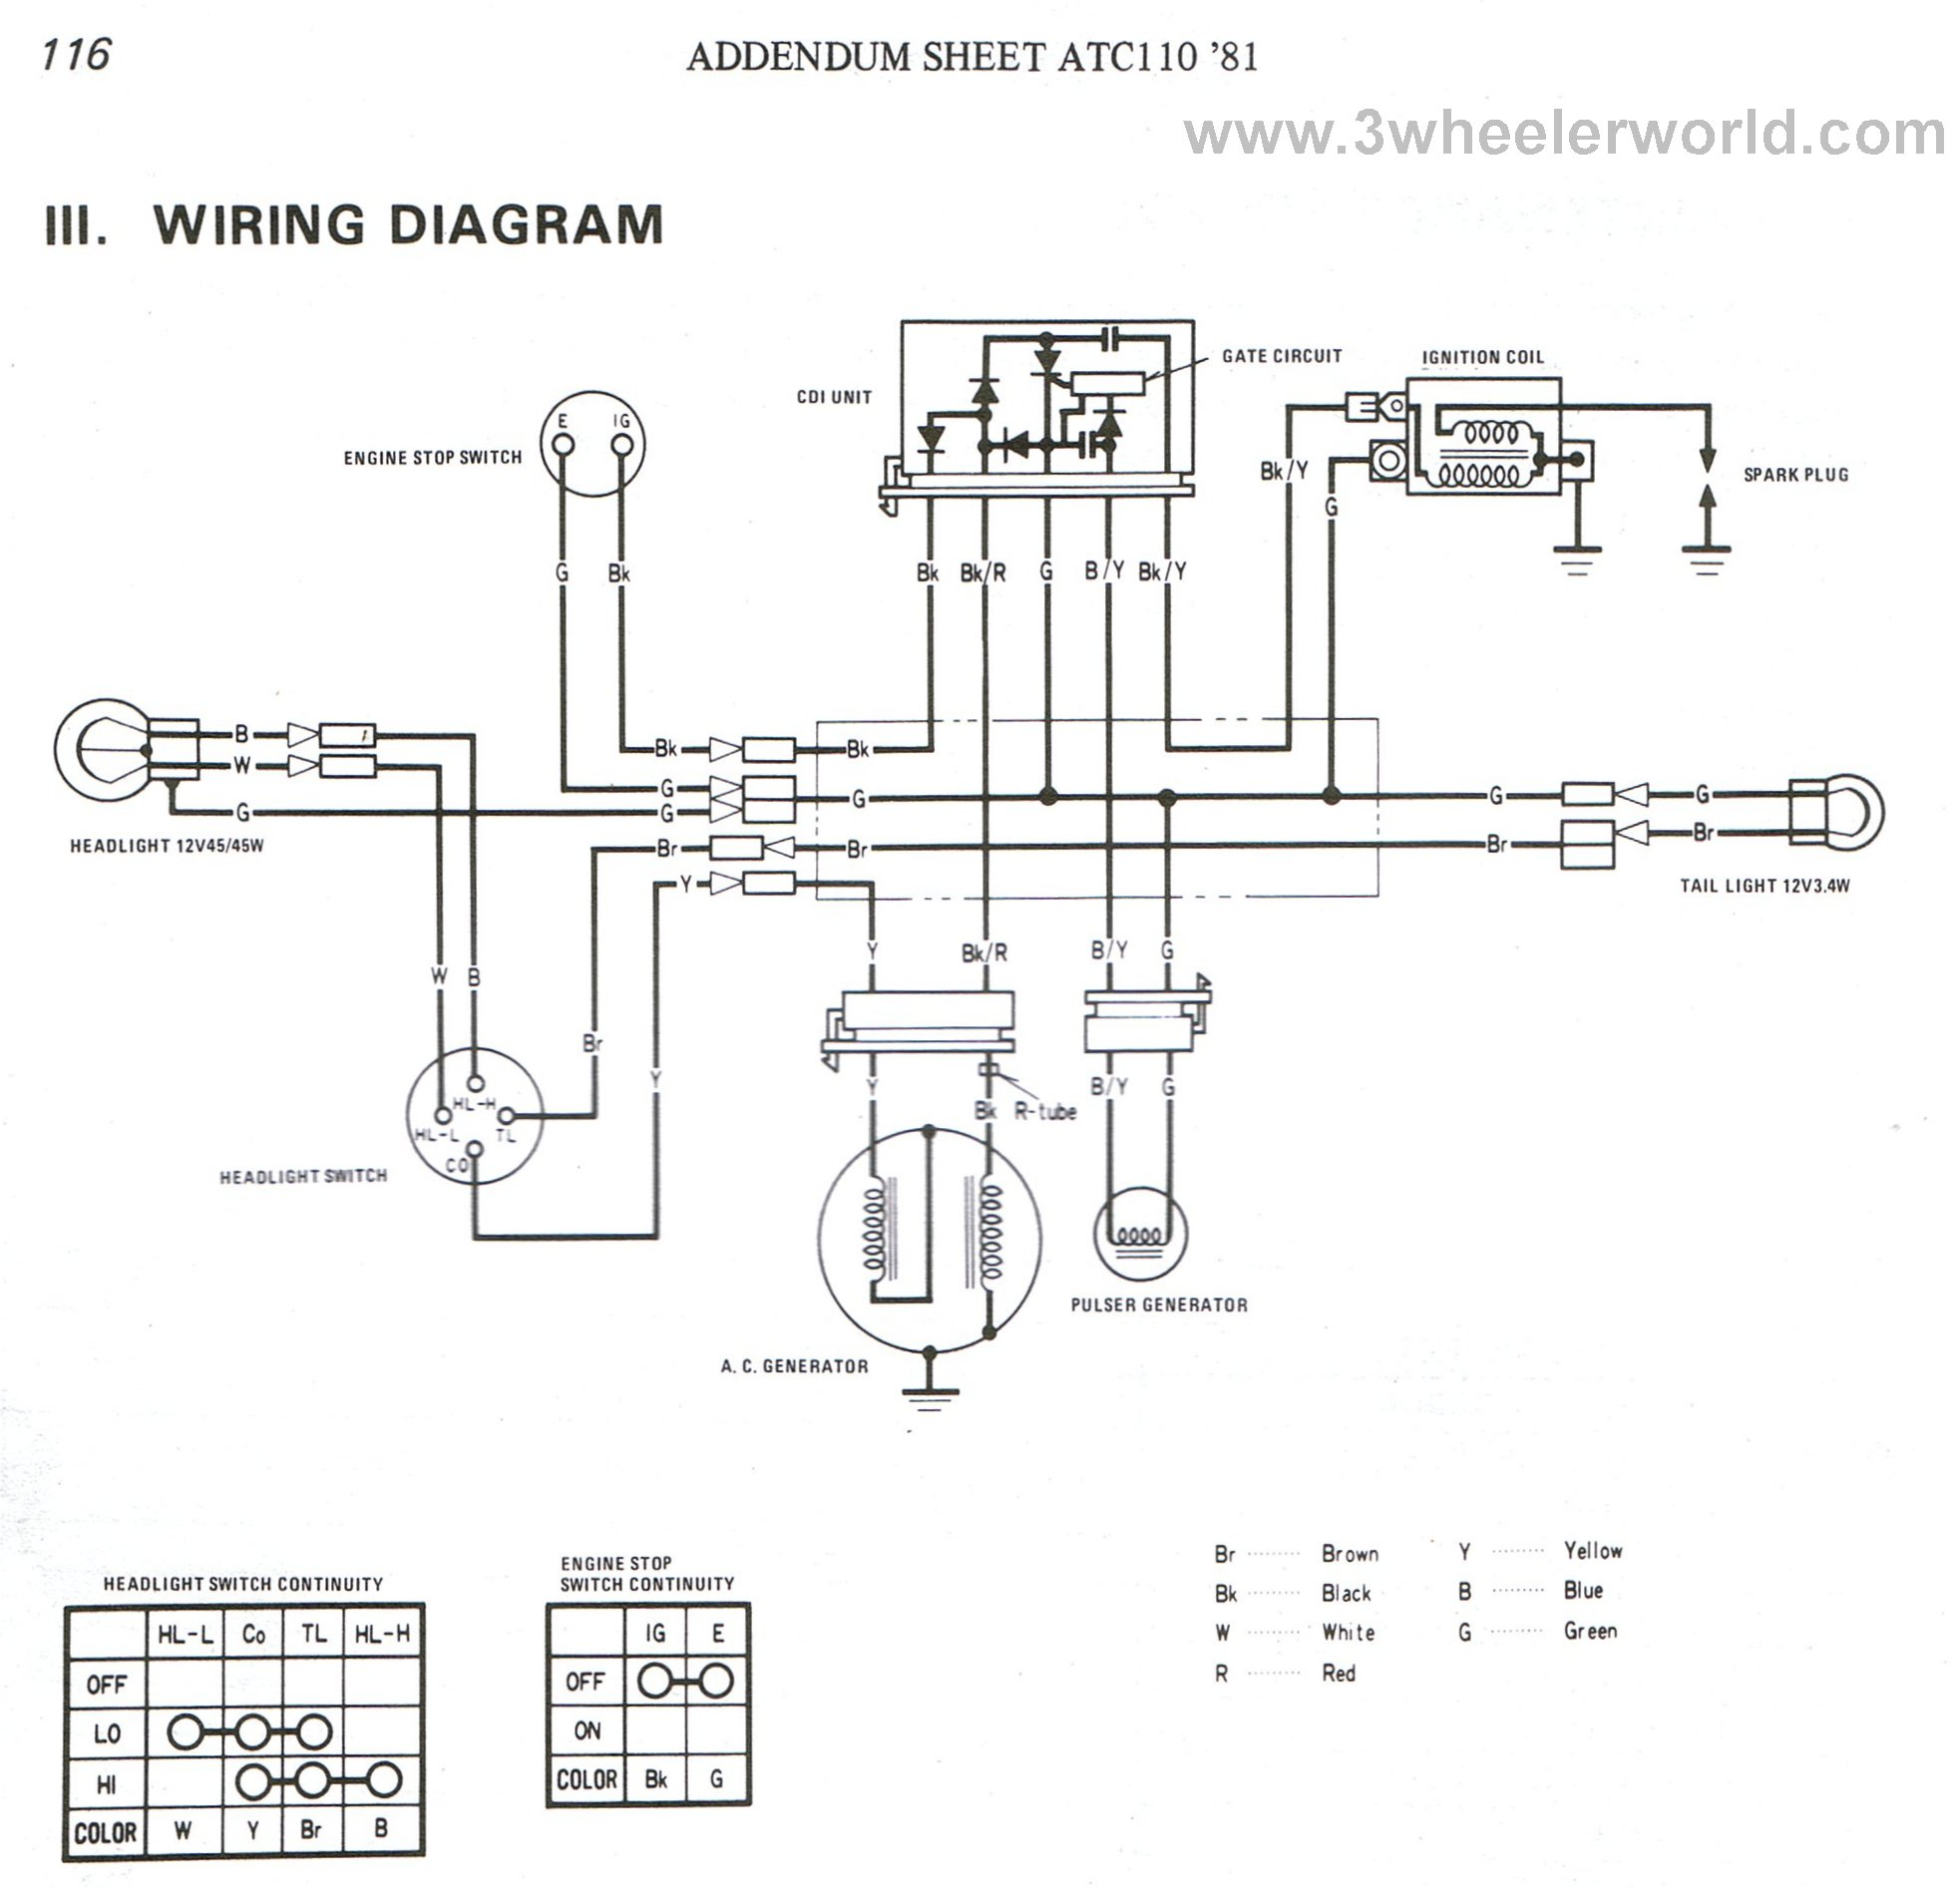 chinese quad bike wiring diagram wiring diagrams and schematics wiring diagram chinese quad bike chinese atv 110